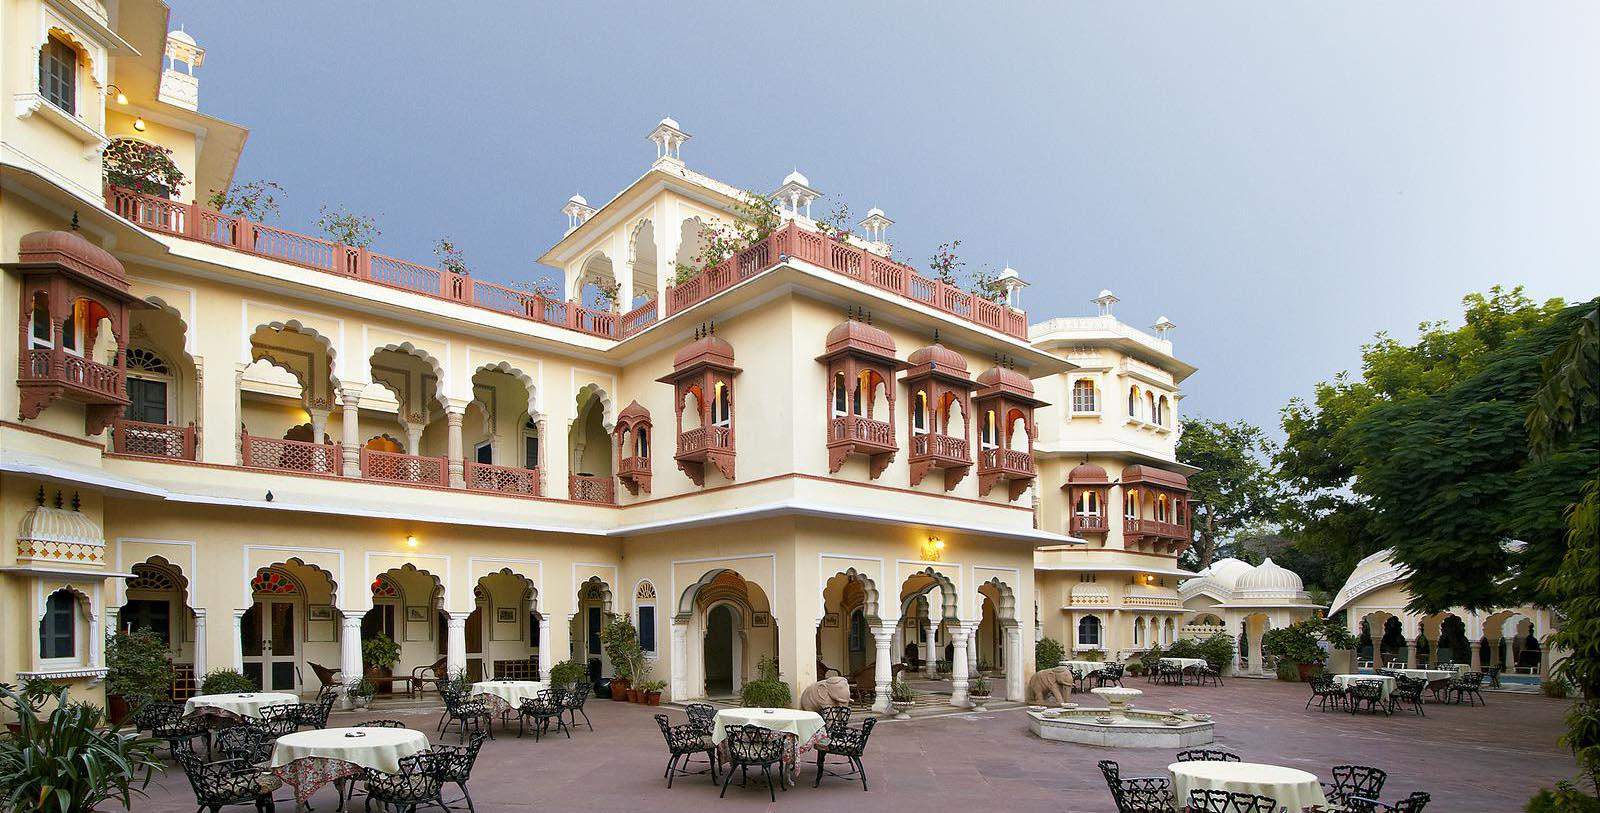 Image of hotel exterior Alsisar Haveli, 1892, Member of Historic Hotels Worldwide, in Jaipur, India, Overview